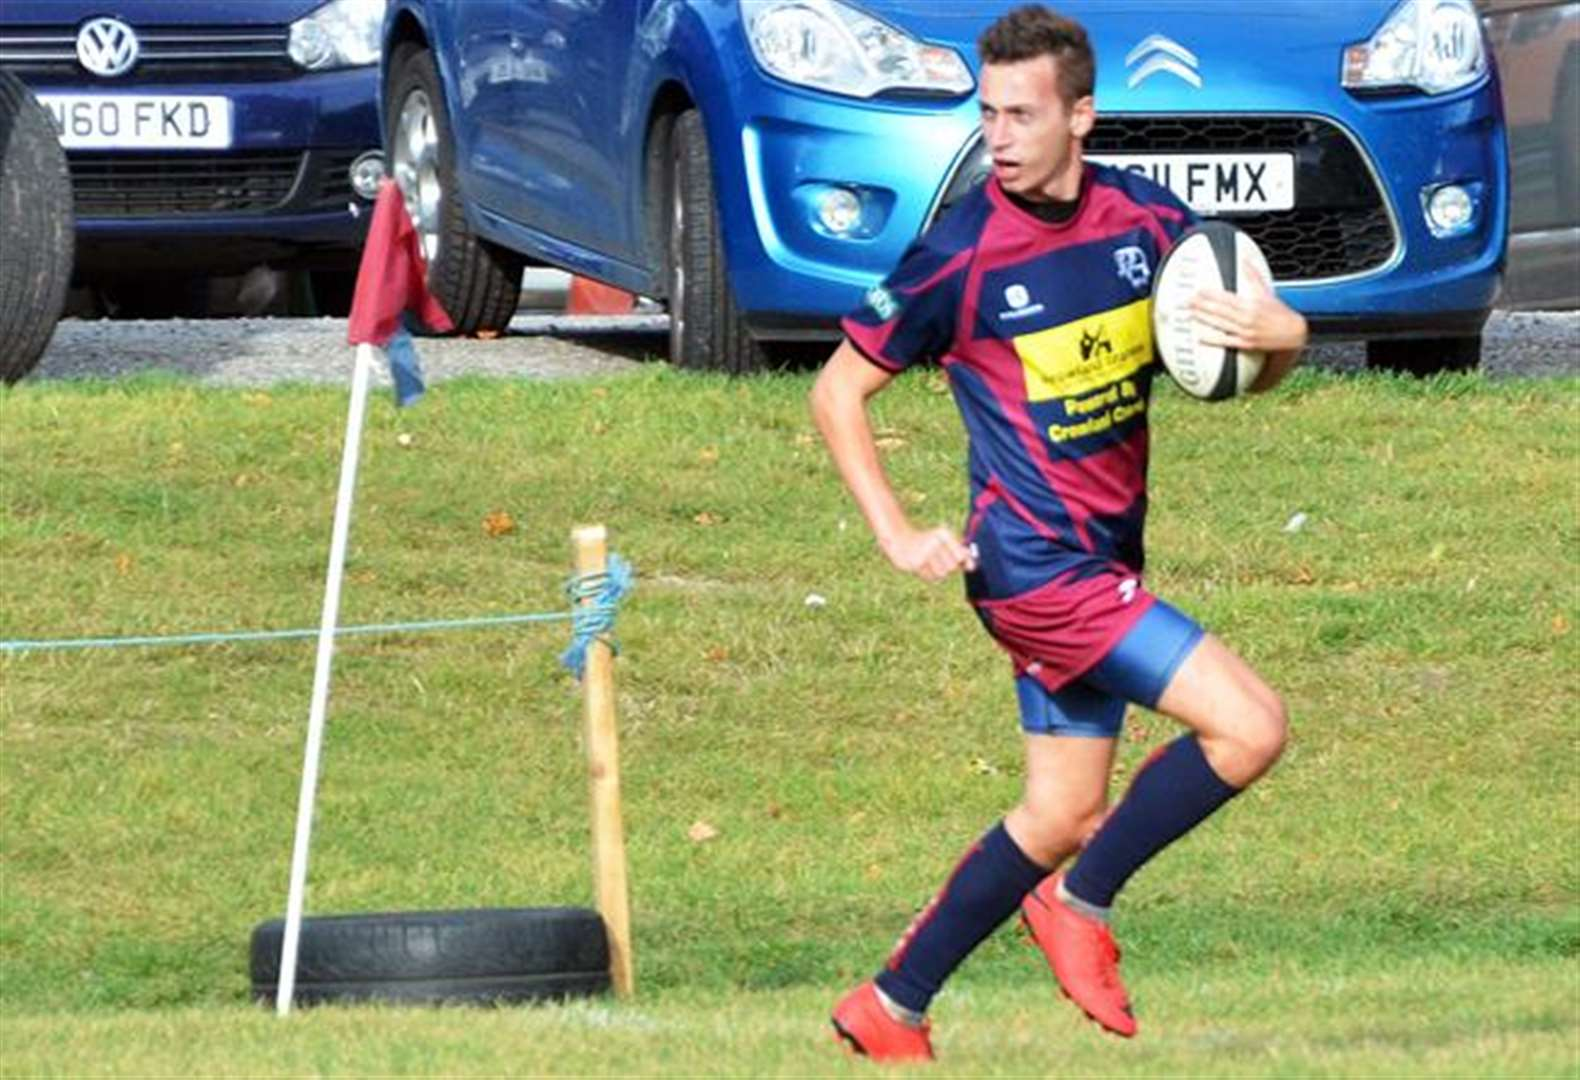 RUGBY UNION: Shut-out win for Spalding